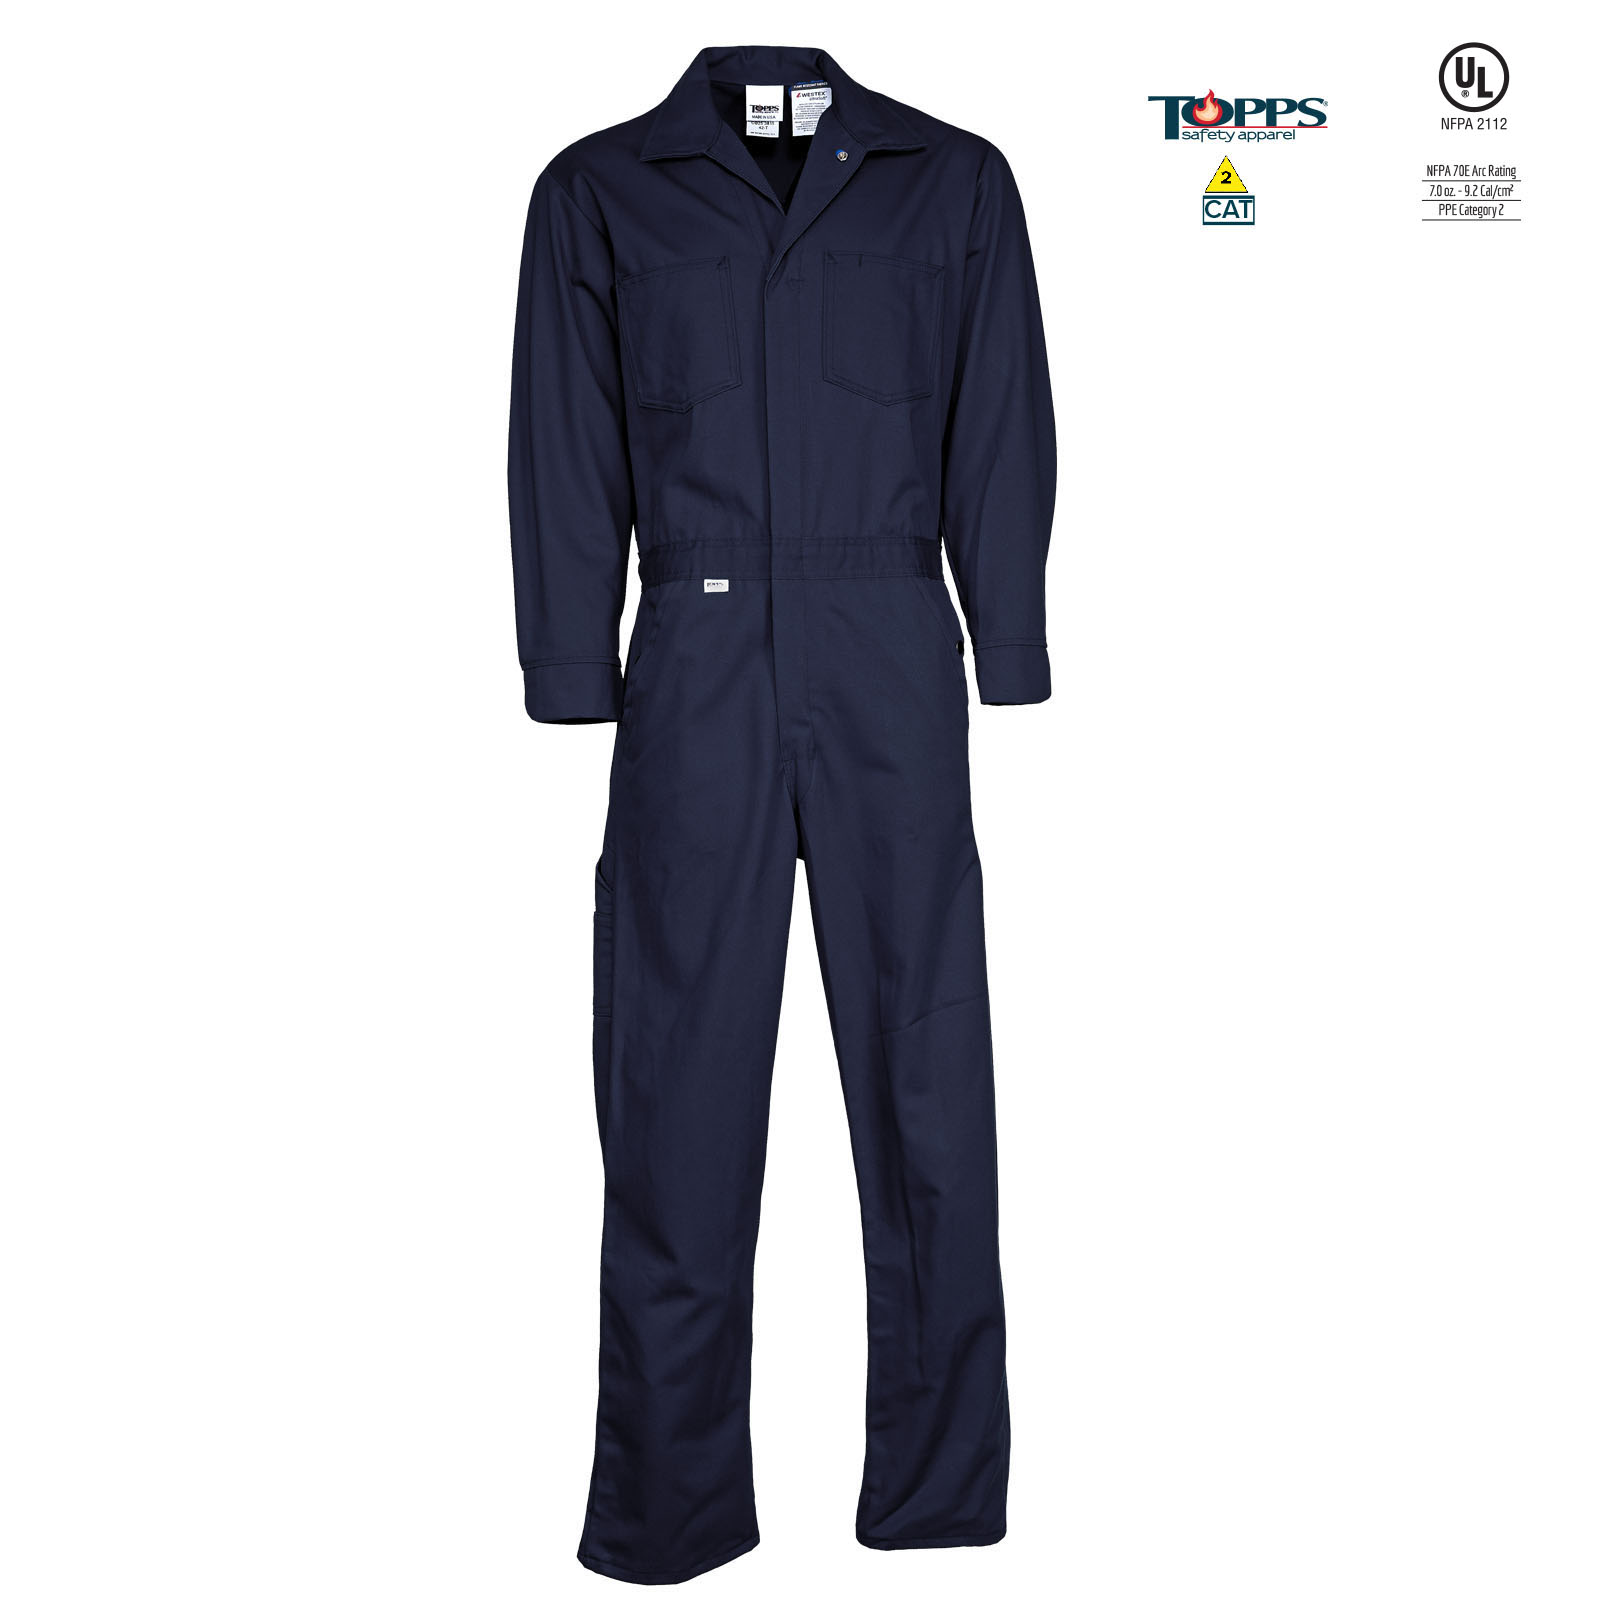 Deluxe 7 ounce PEAK FR 88/12 Cotton/Nylon Blend FR Coverall-